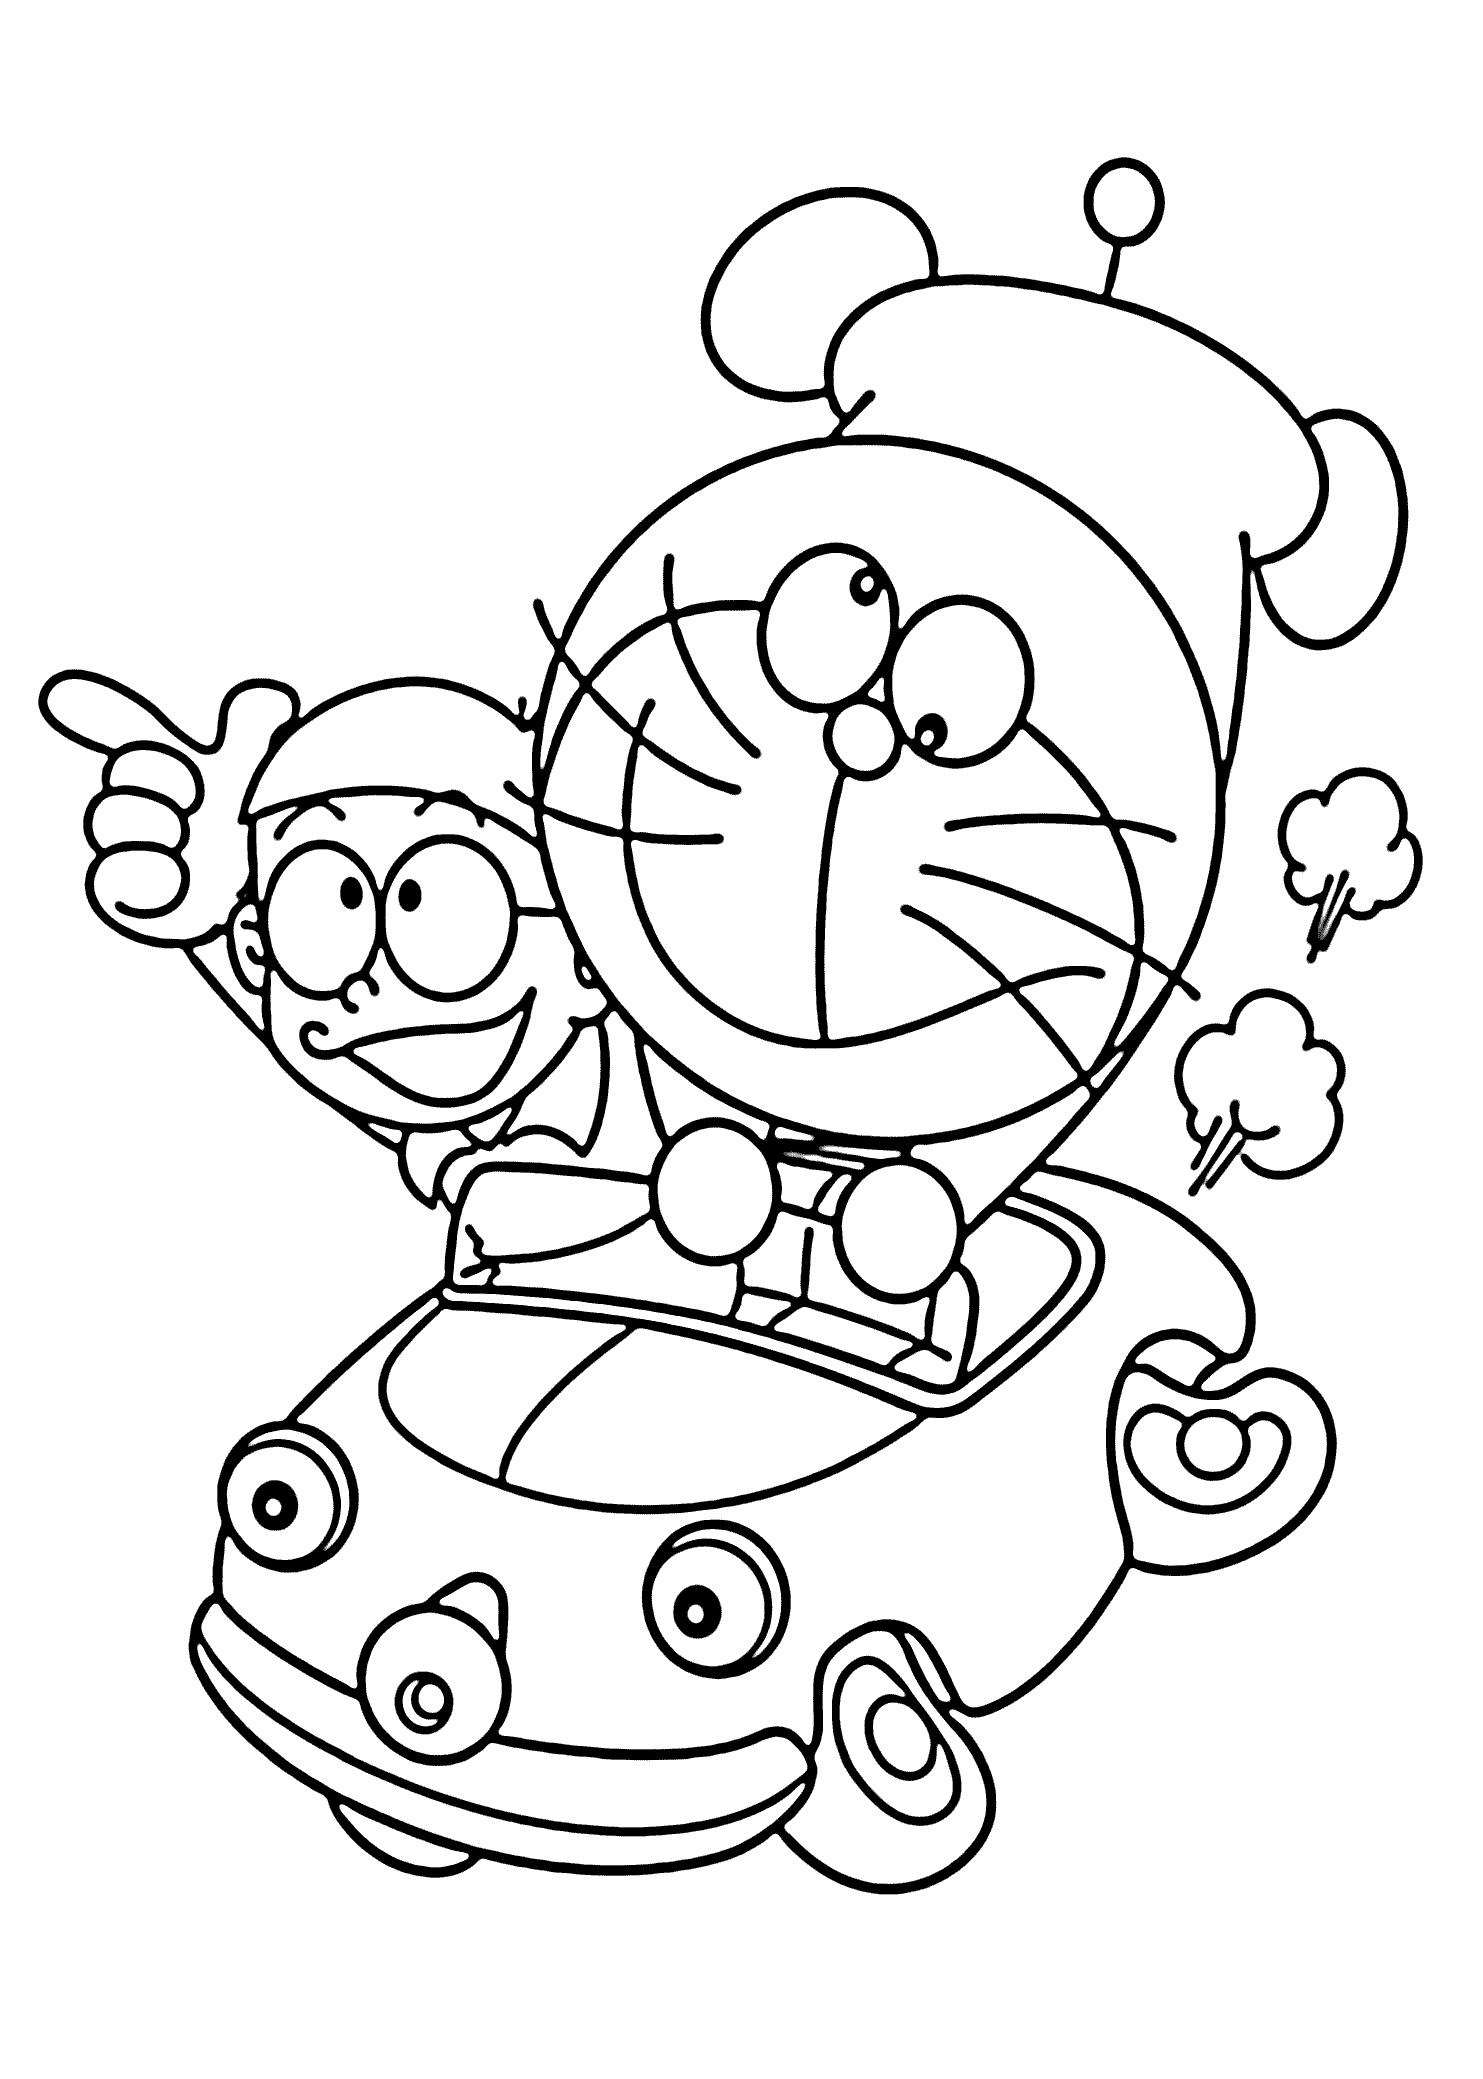 Vw Beetle Coloring Pages At Getcolorings